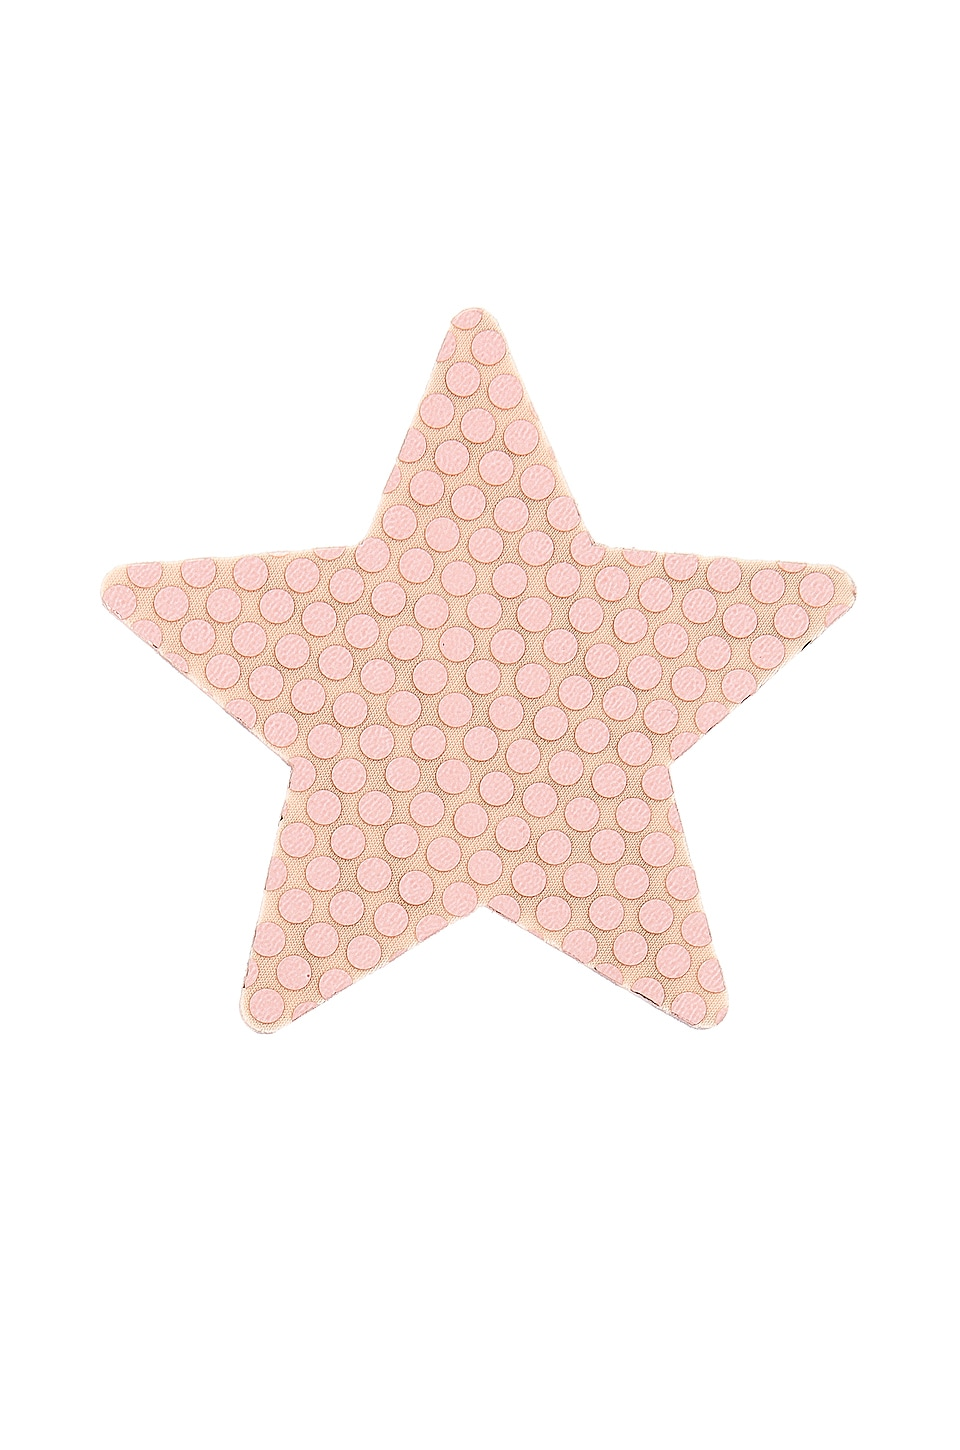 Bristols6 Rosey Star Reusable Nippies in Rose Gold